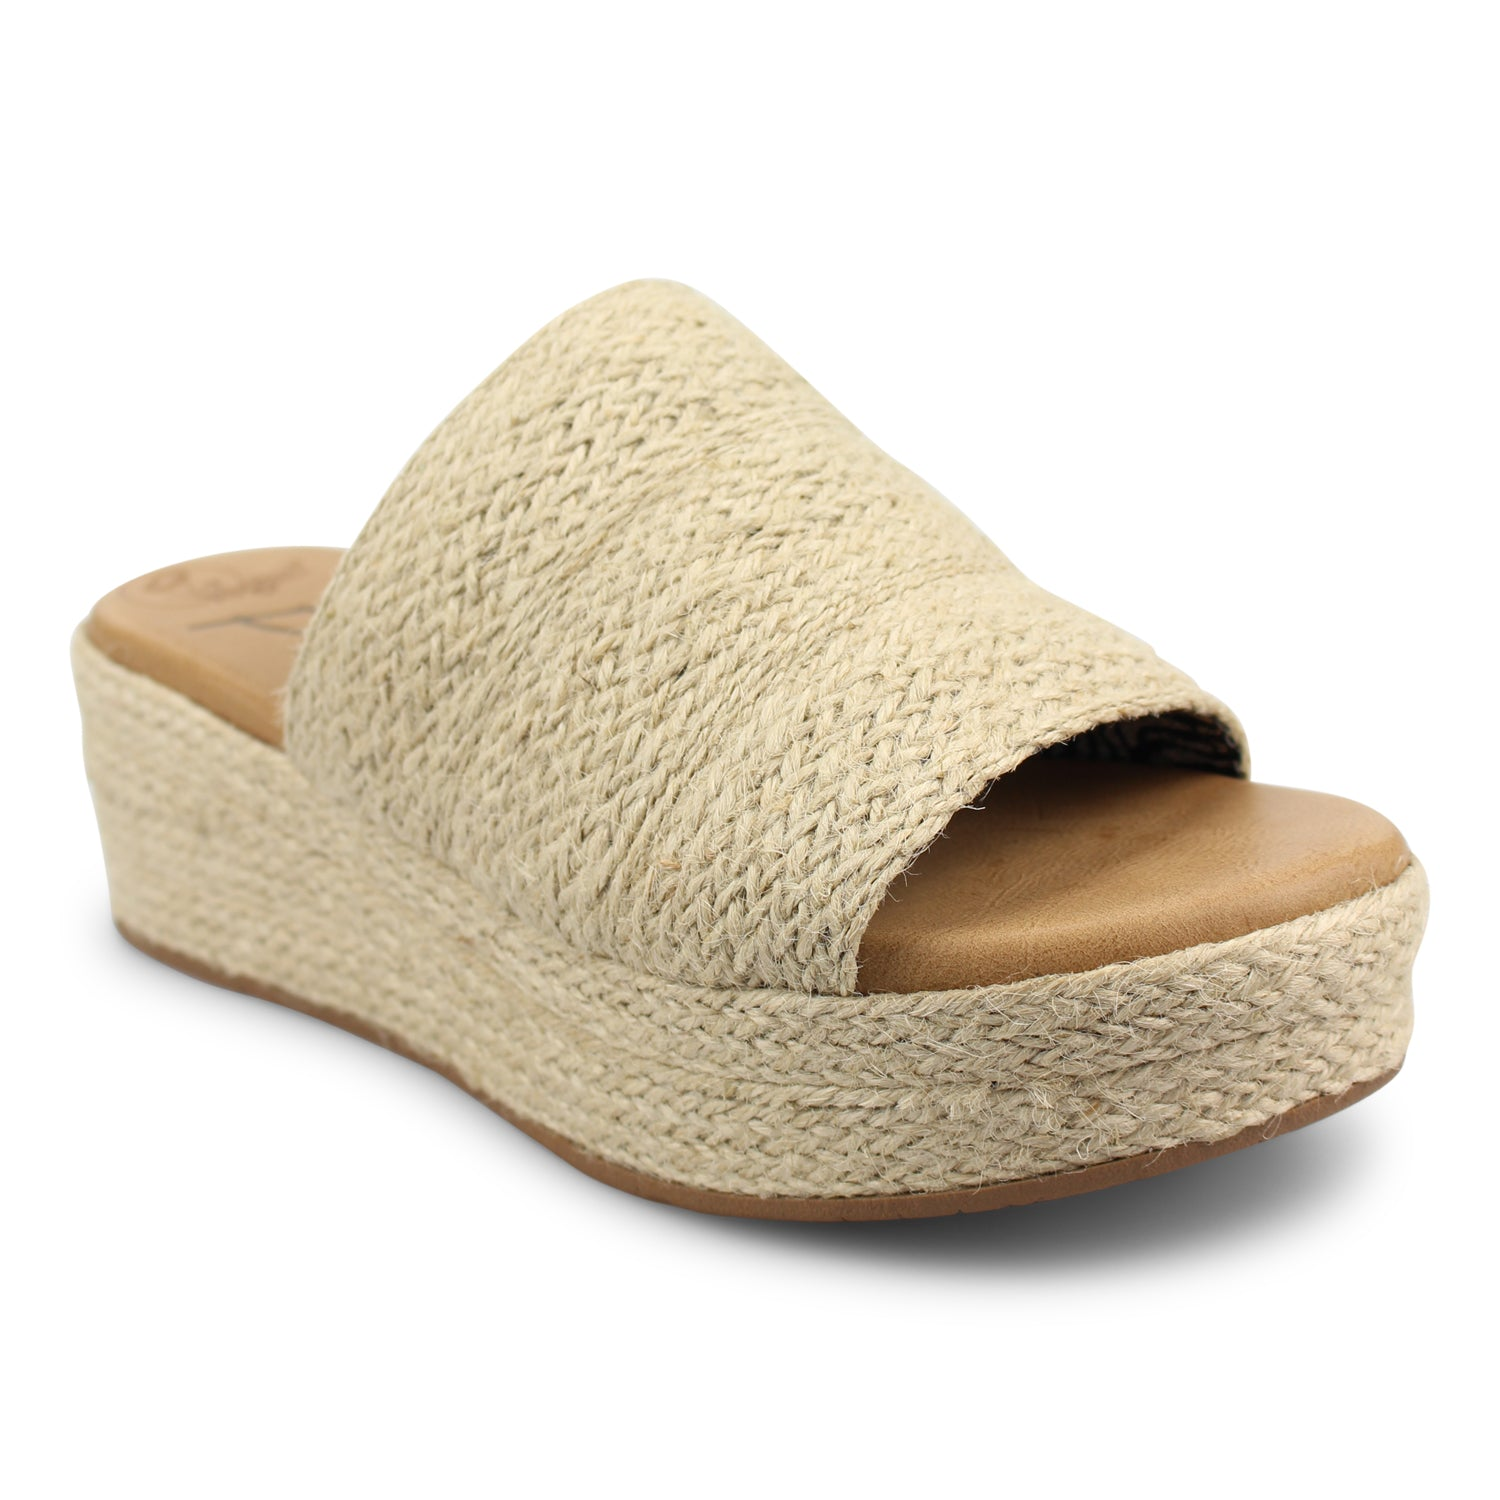 'Blowfish Malibu' Women's Leigh Sandal - Natural Jute